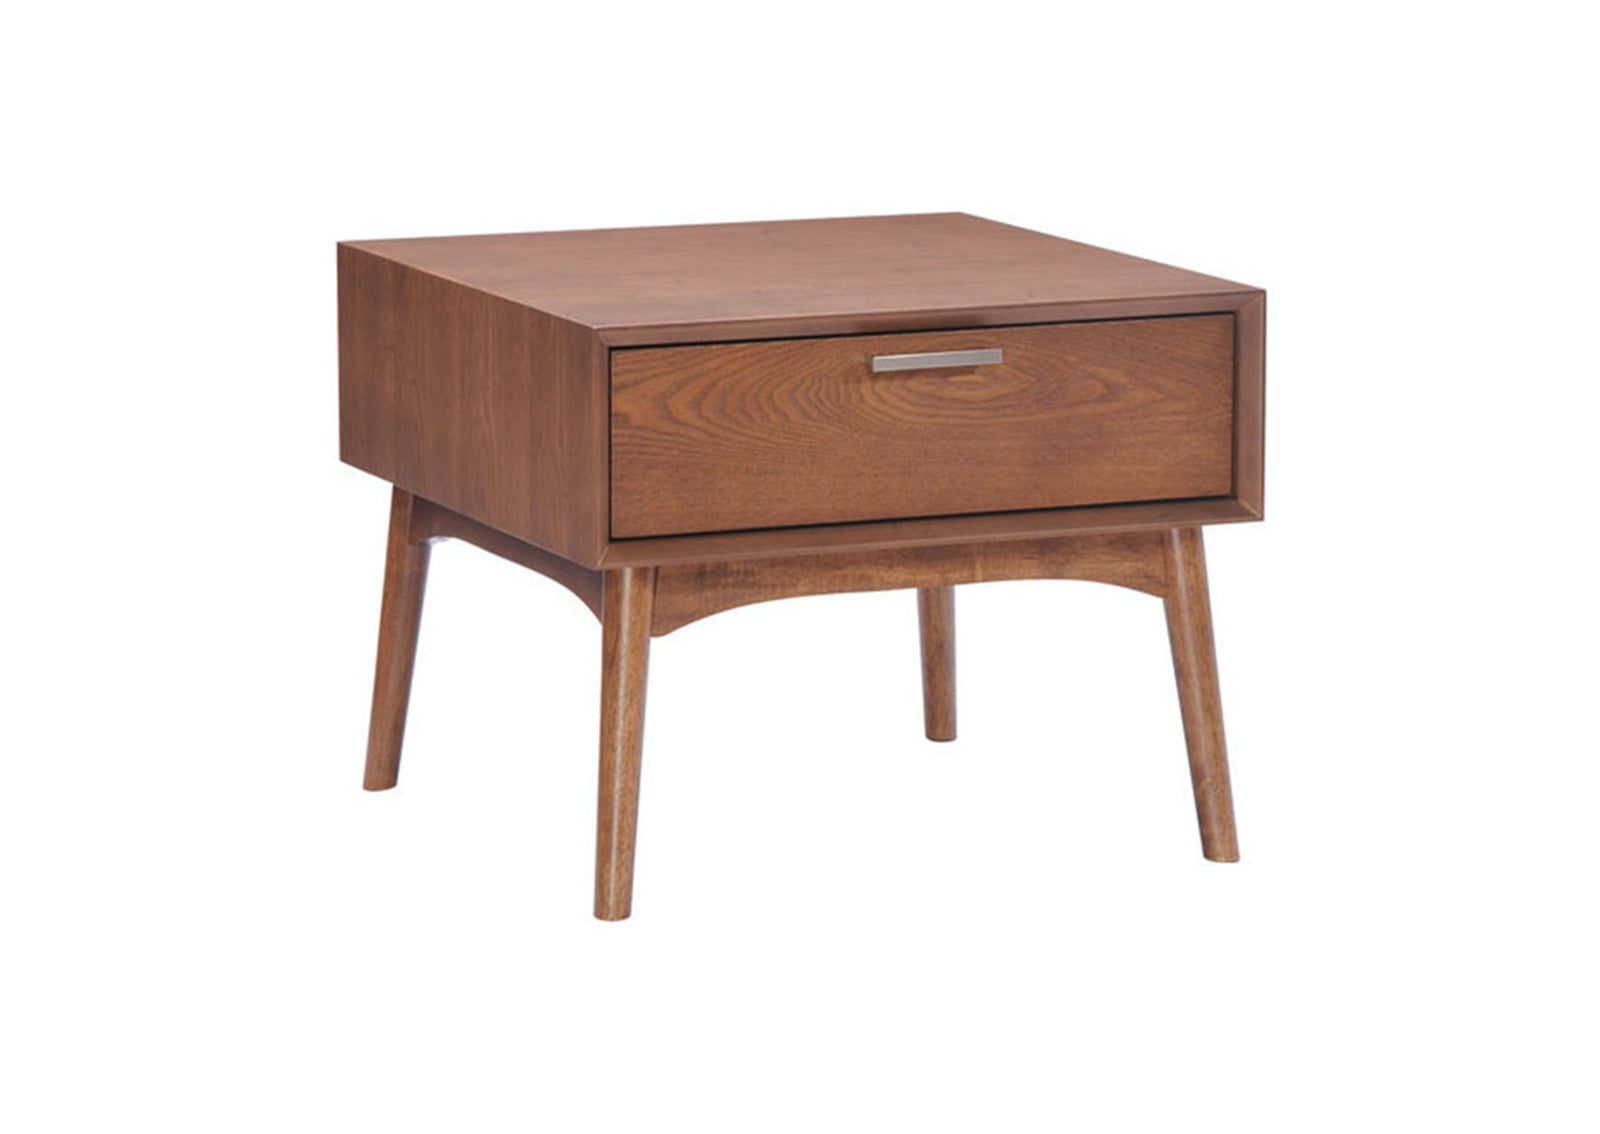 Design-District-Side-Table-Walnut1